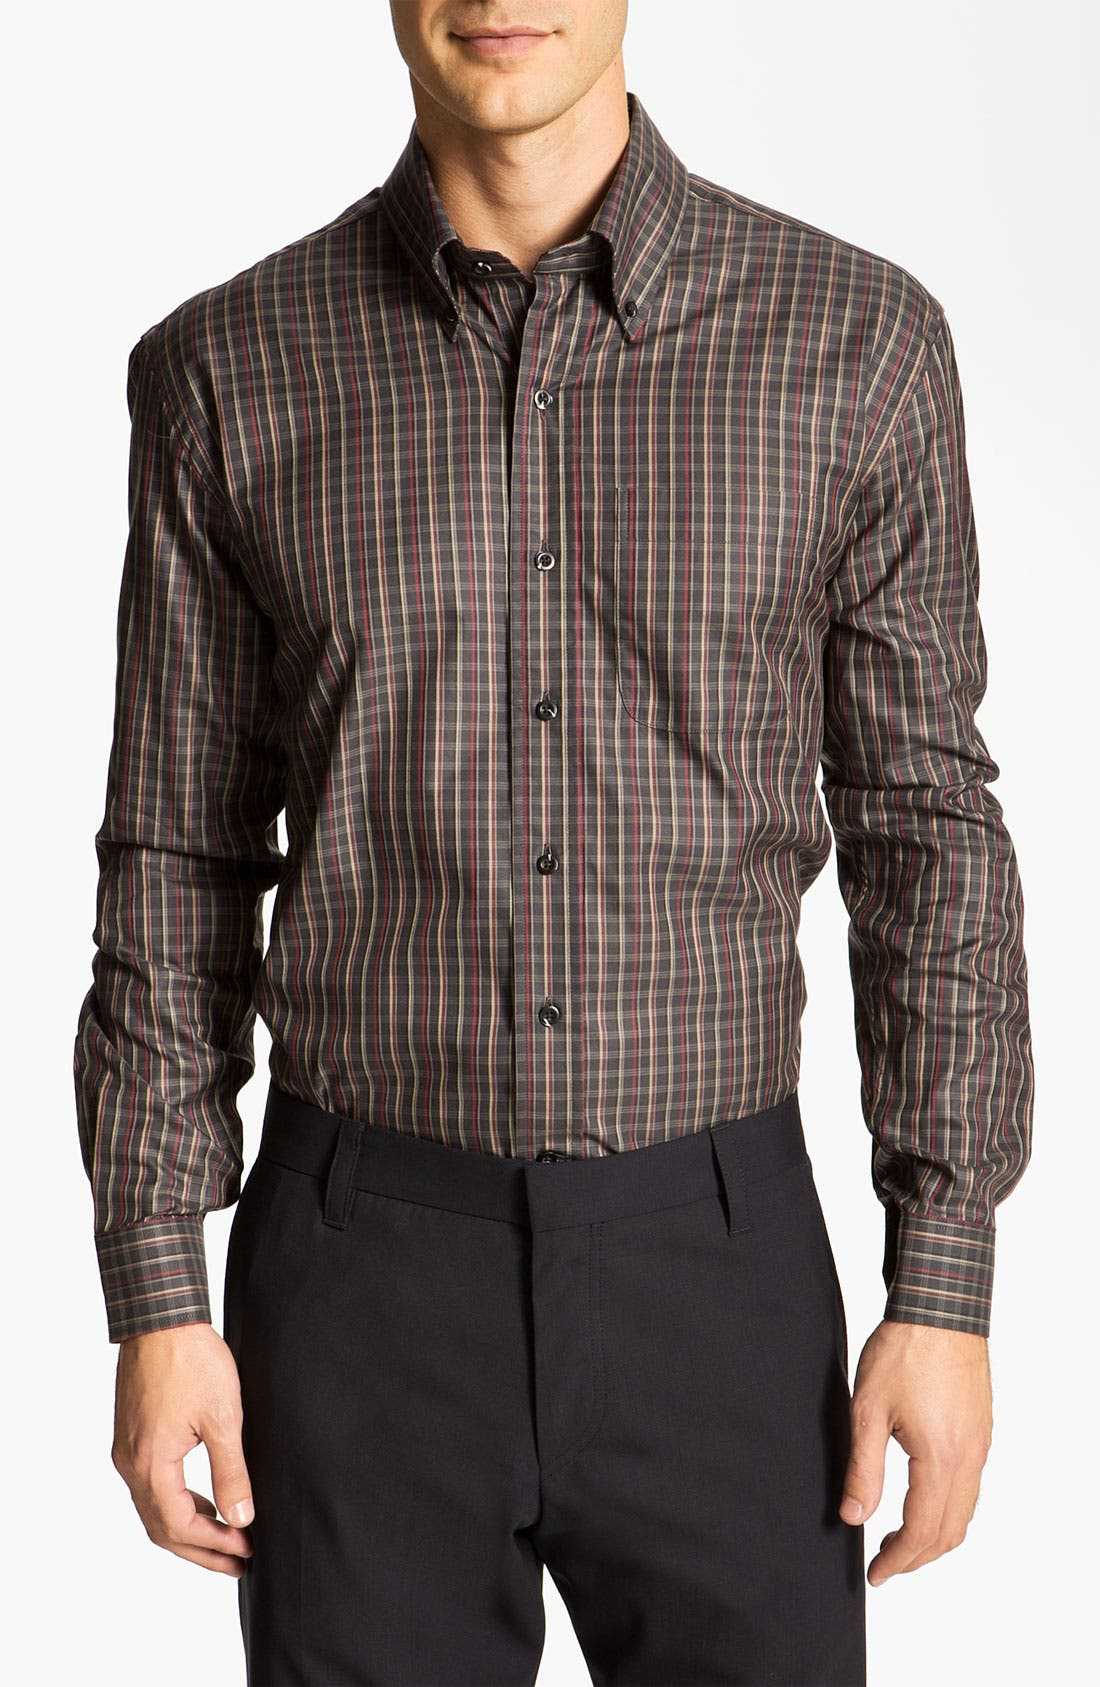 Alternate Image 1 Selected - Cutter & Buck 'Kennewick' Plaid Sport Shirt